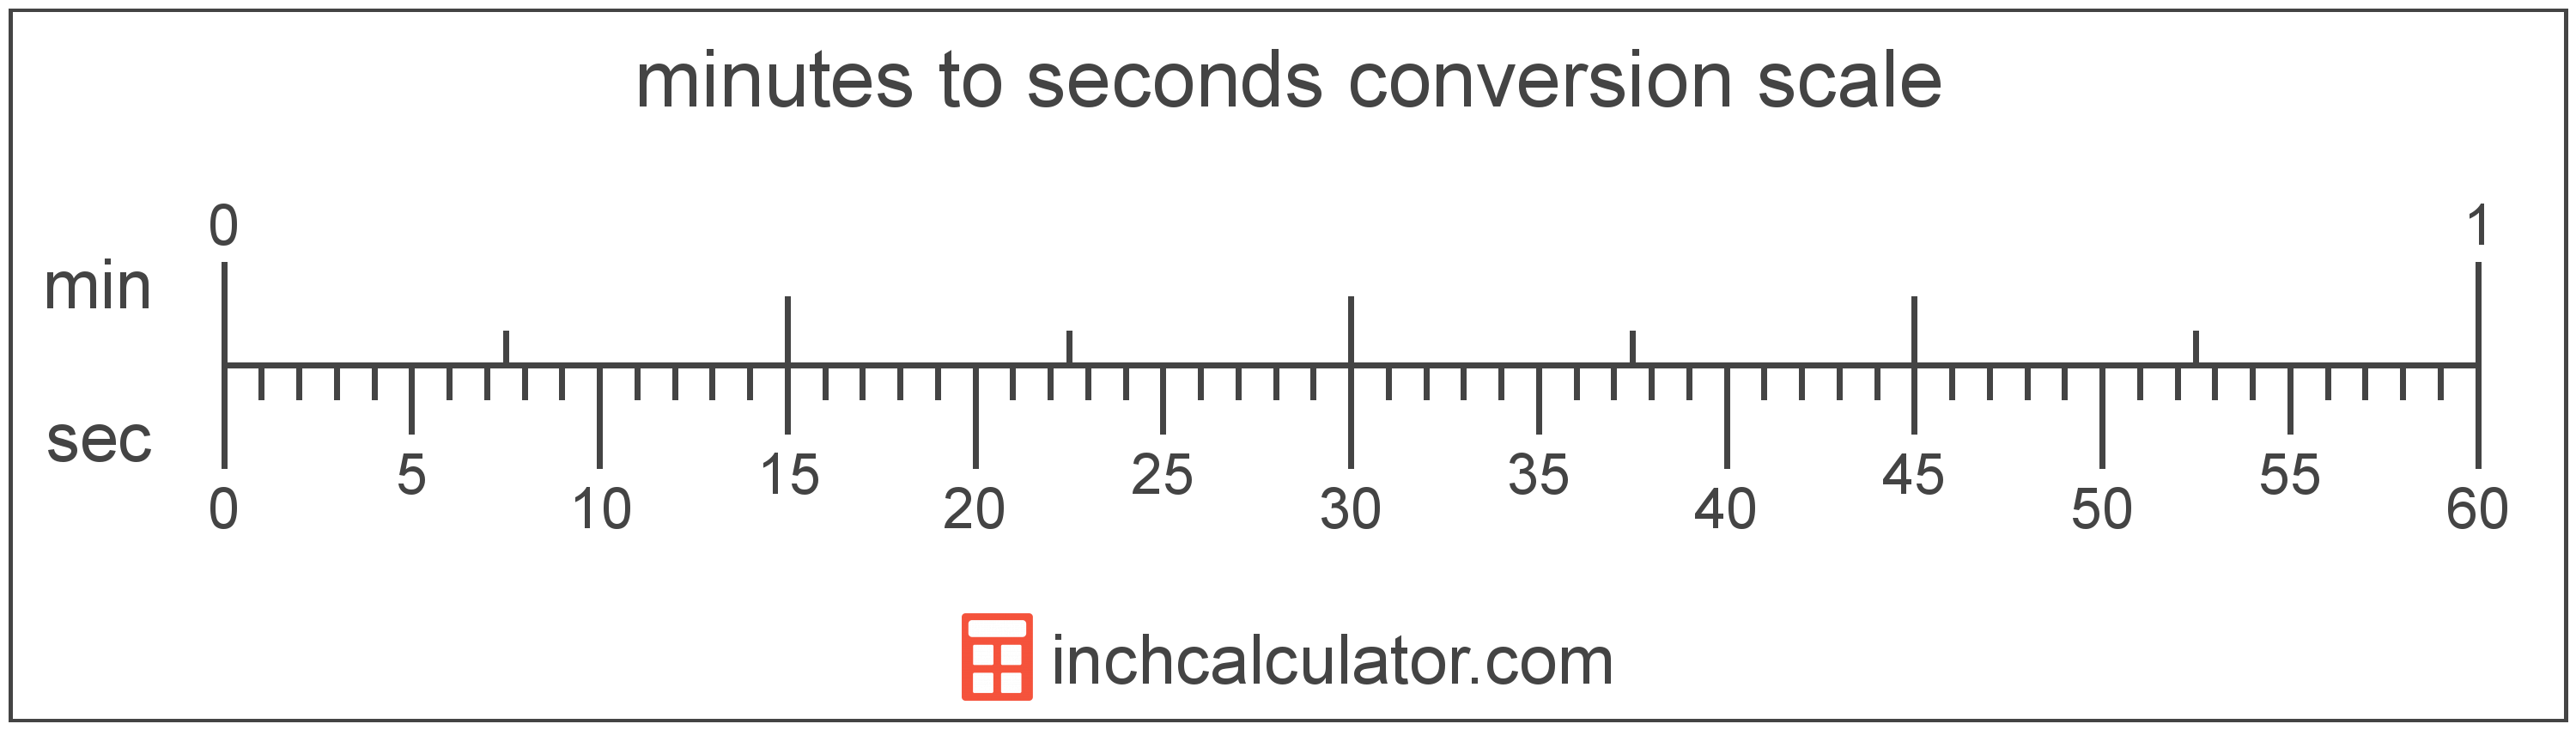 conversion scale showing seconds and equivalent minutes time values